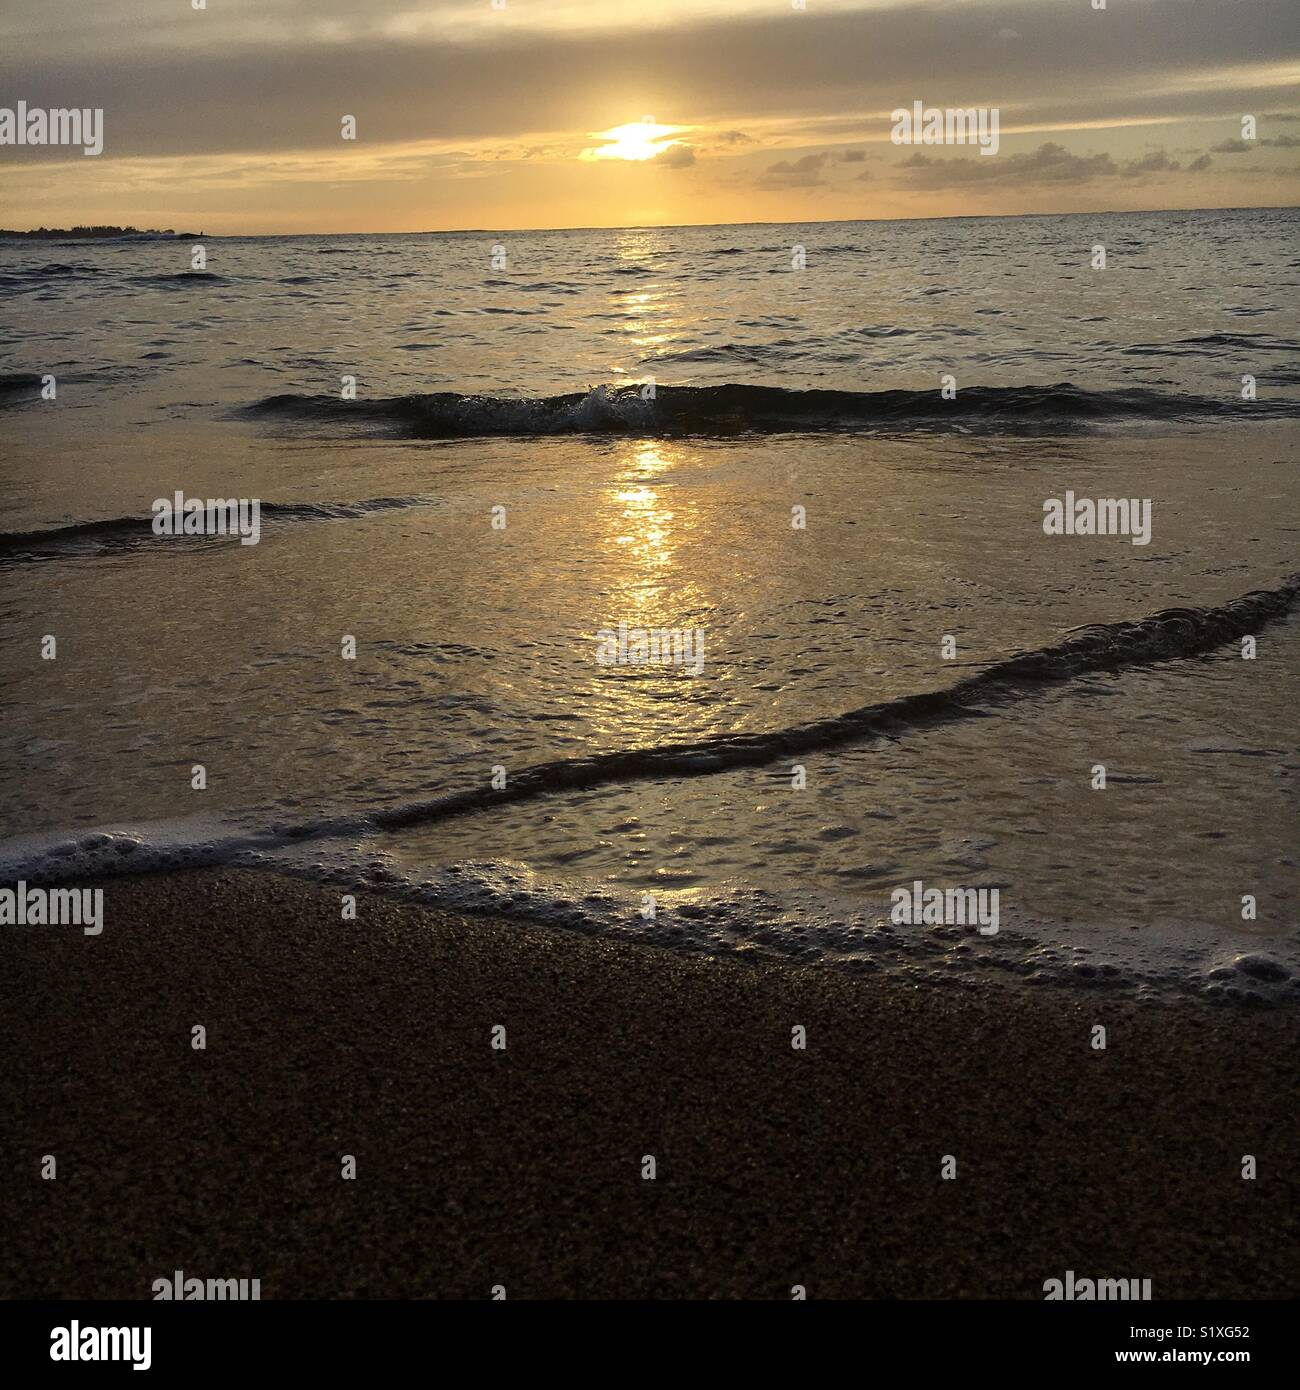 Small gentle waves glide onto shore - Stock Image